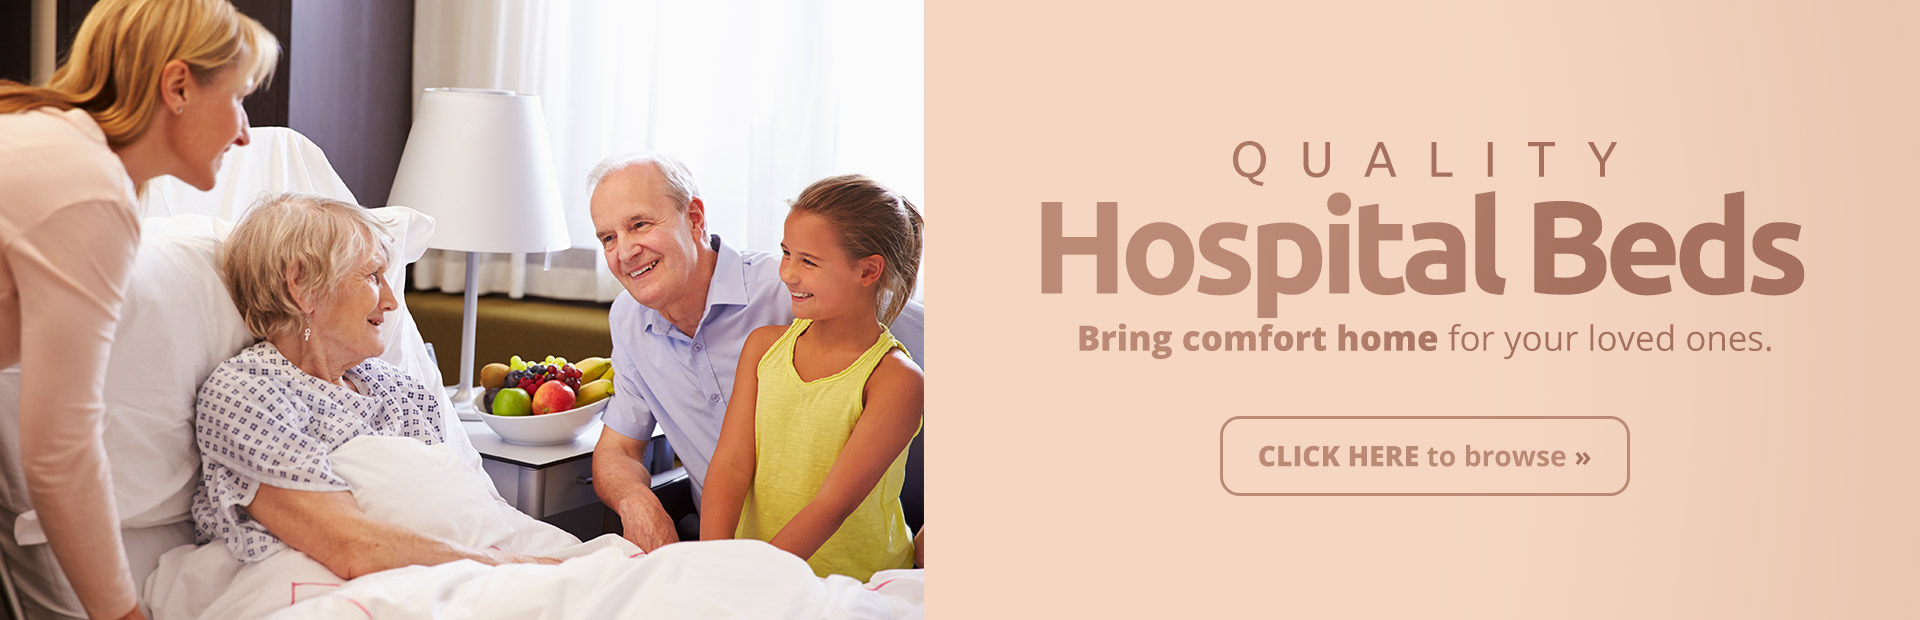 Quality Hospital Beds: Click here to browse.